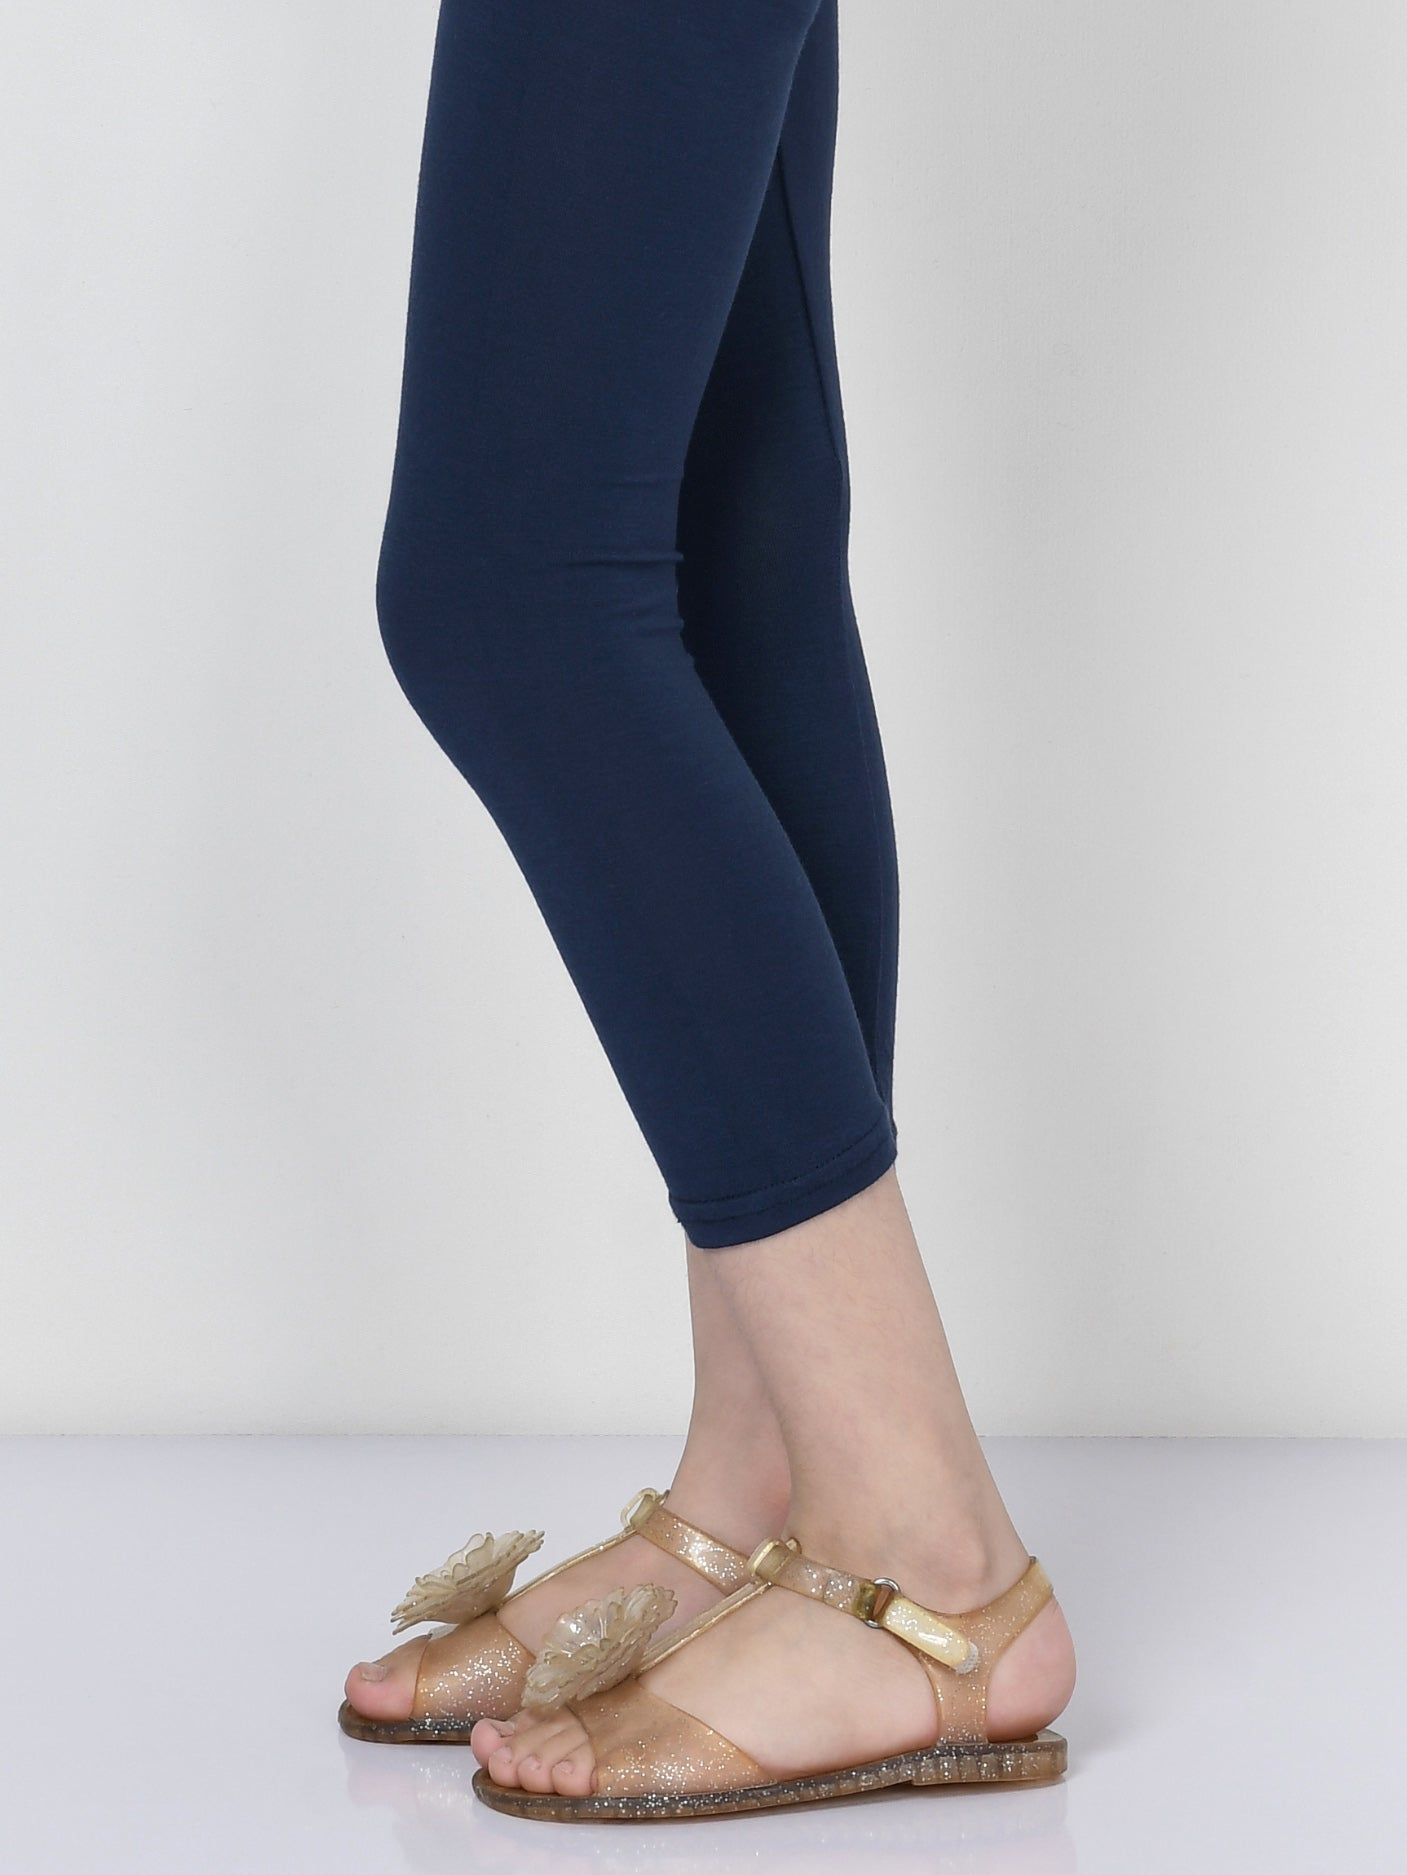 Basic Tights - Navy Blue